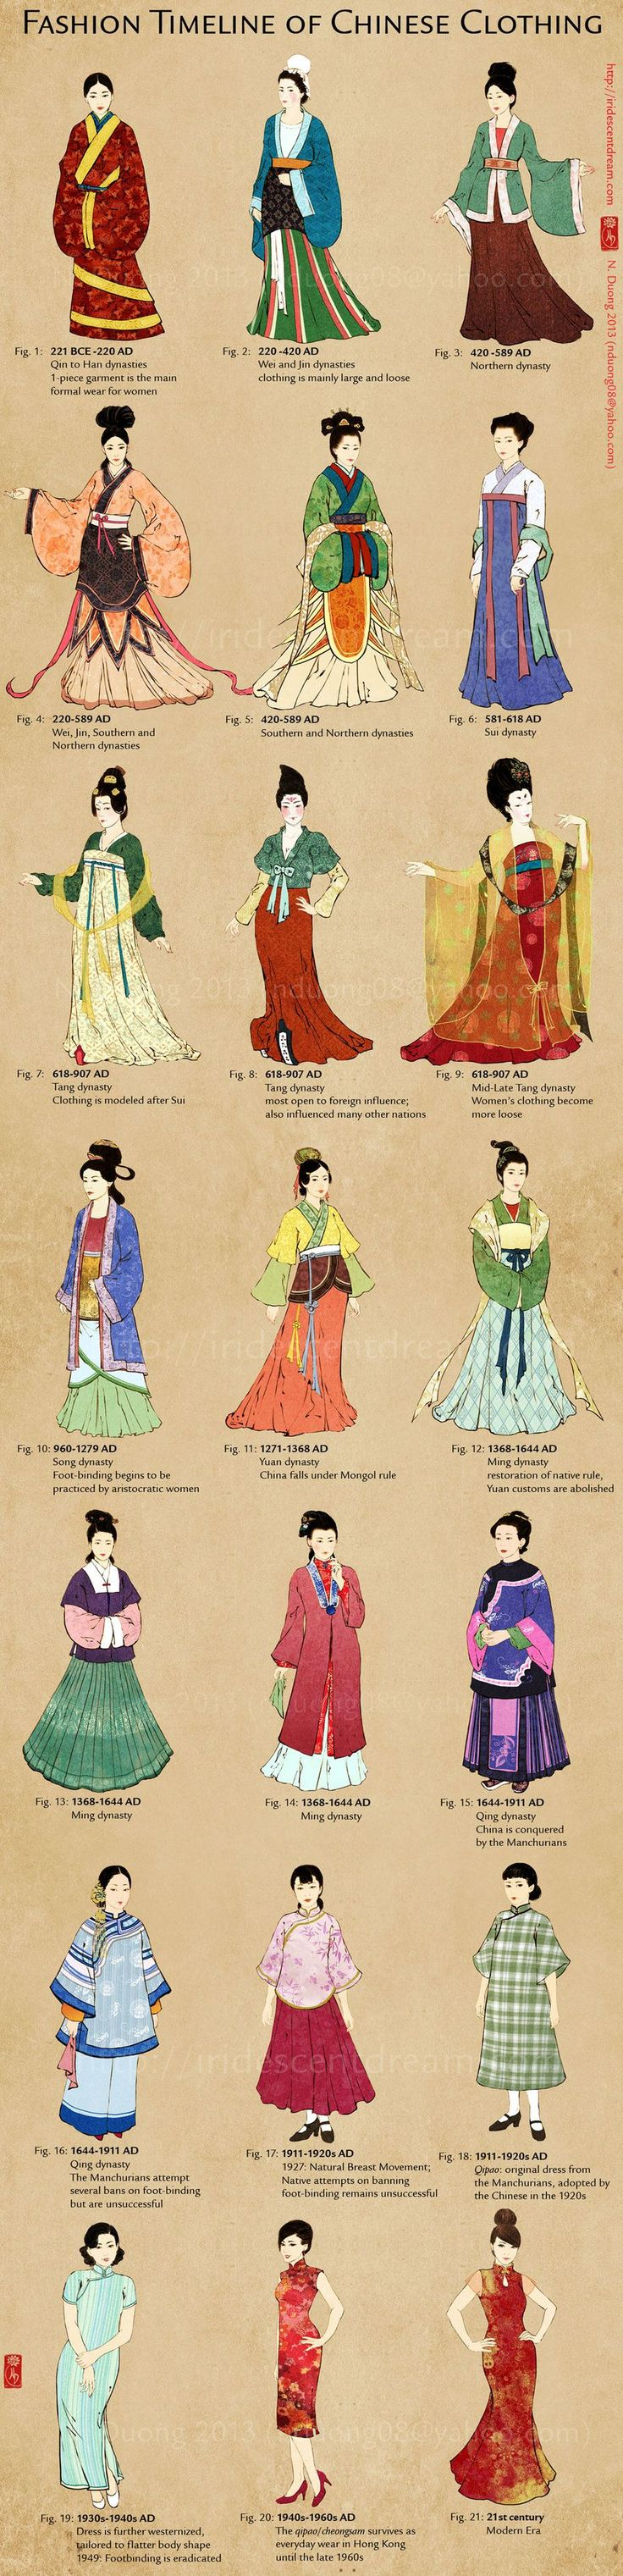 Cooking vegetables chinese style dresses